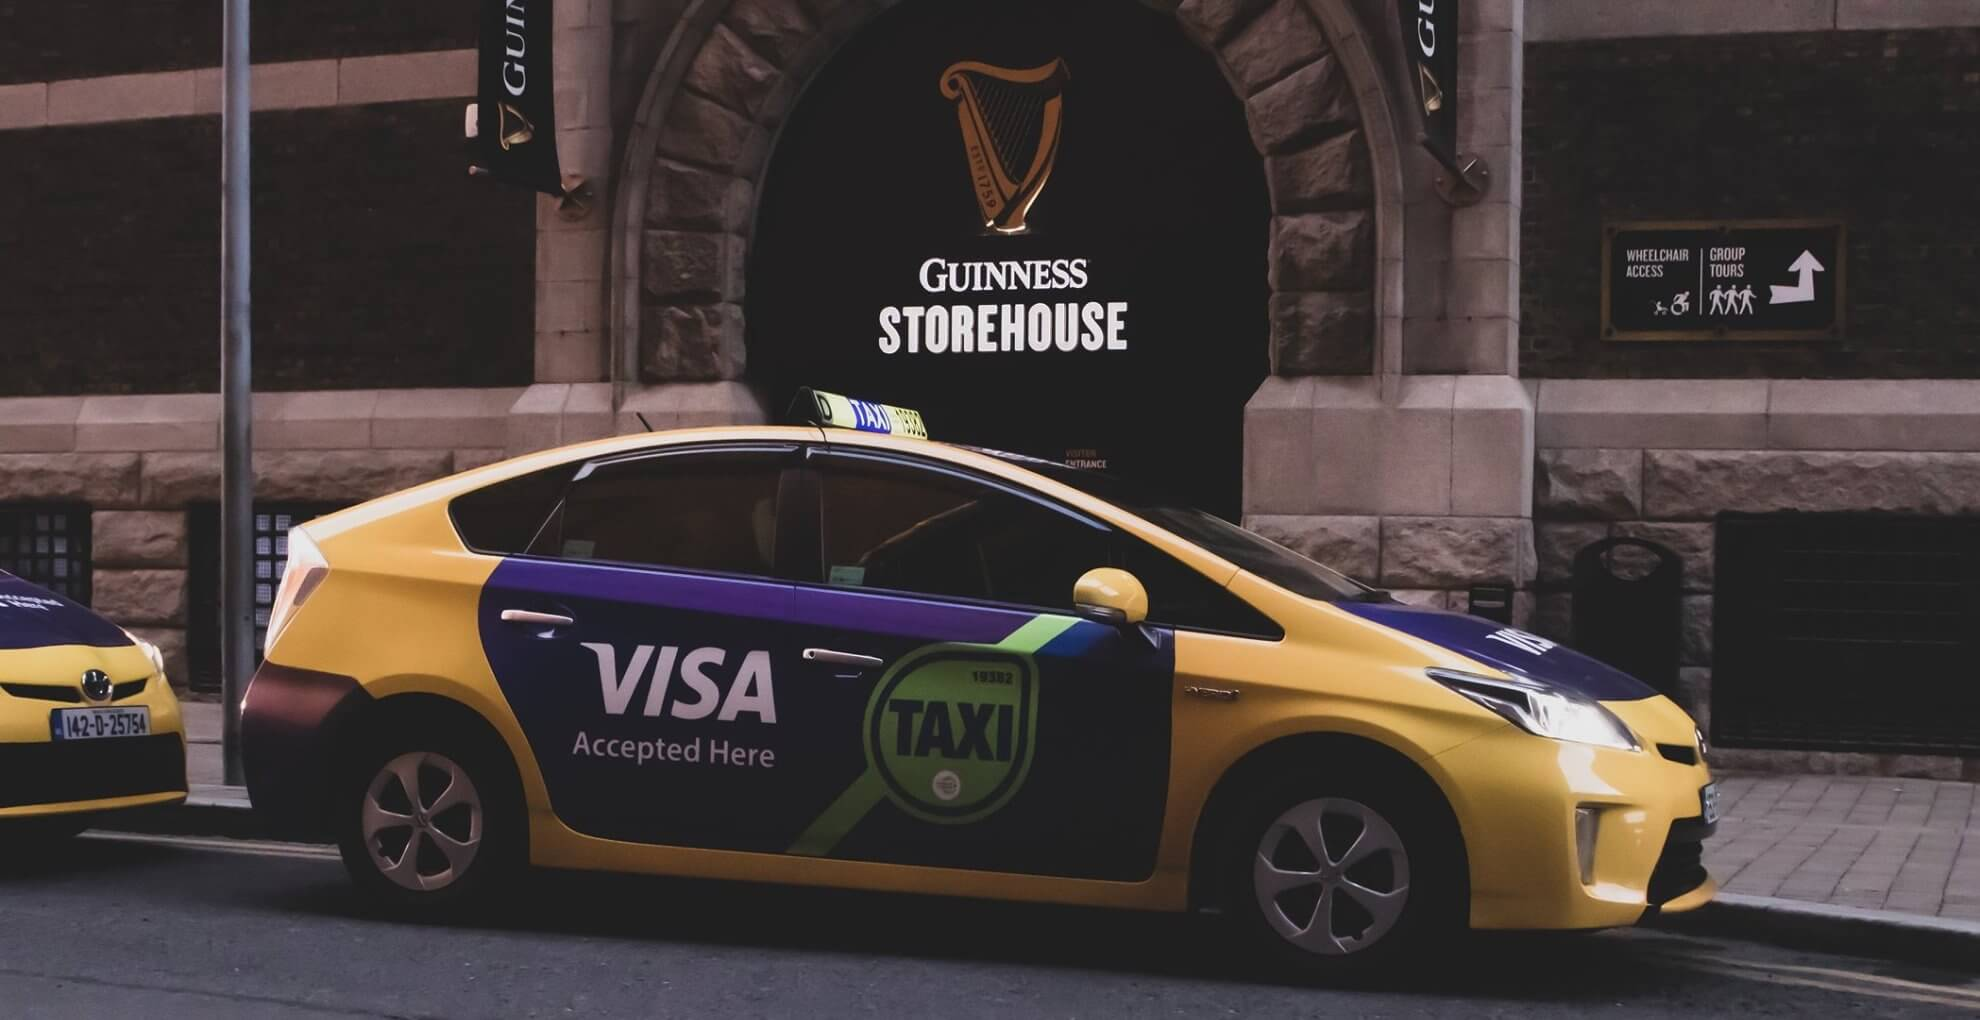 guinness storehouse taxi ads